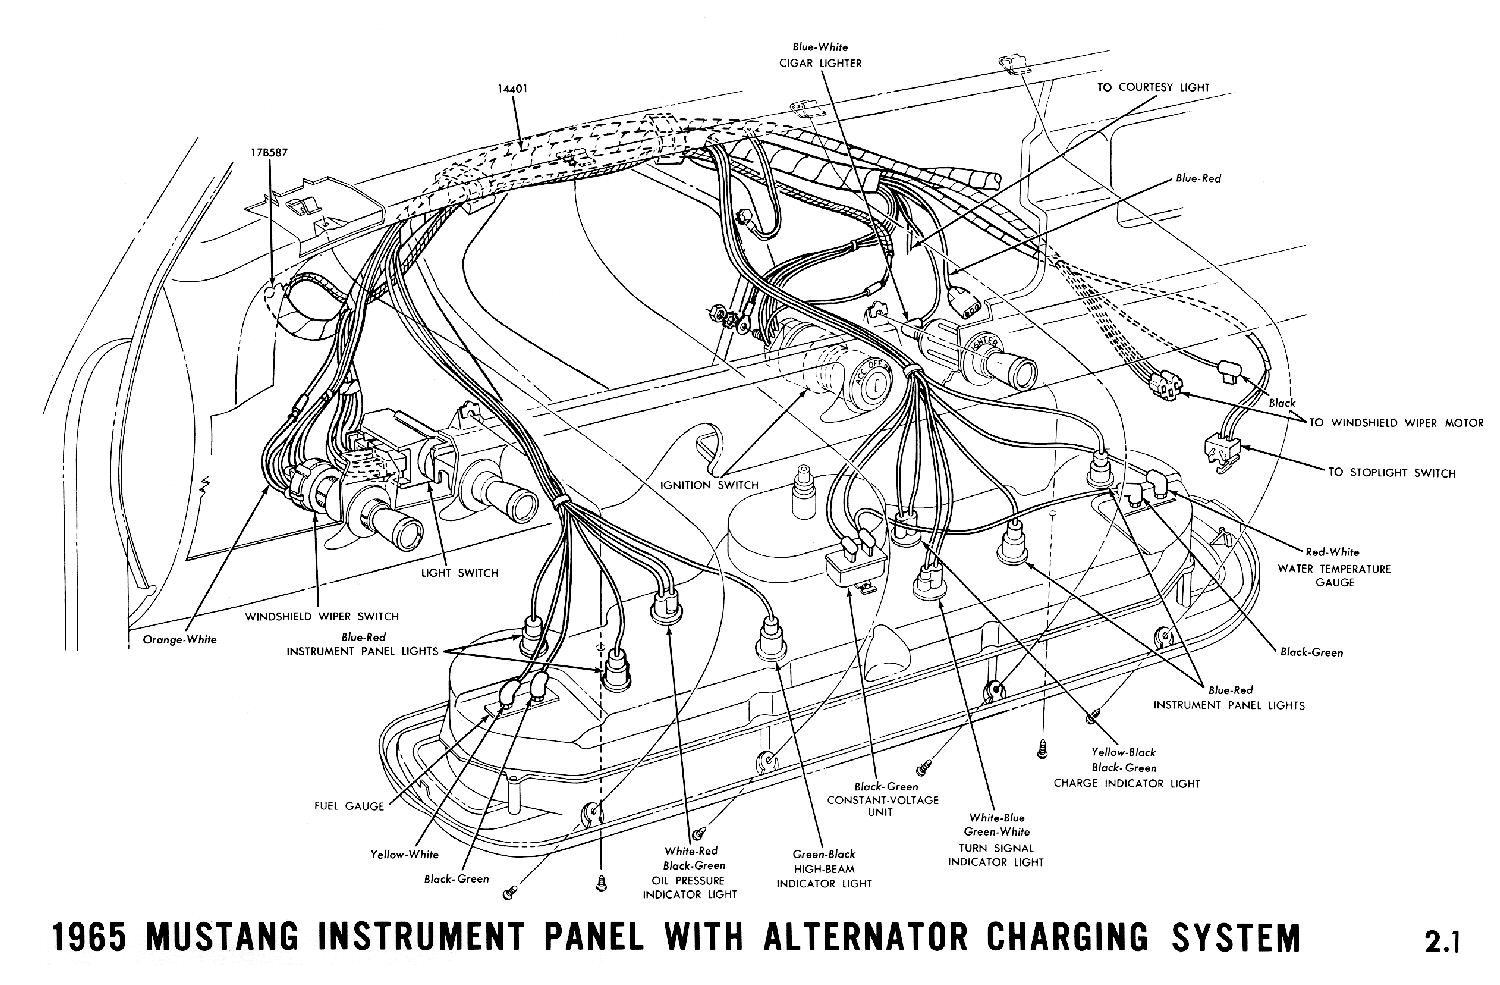 el ritningar rh ht67 com 1965 Mustang Radio Wiring Diagram 1964 Mustang Tail Light Wiring Diagram